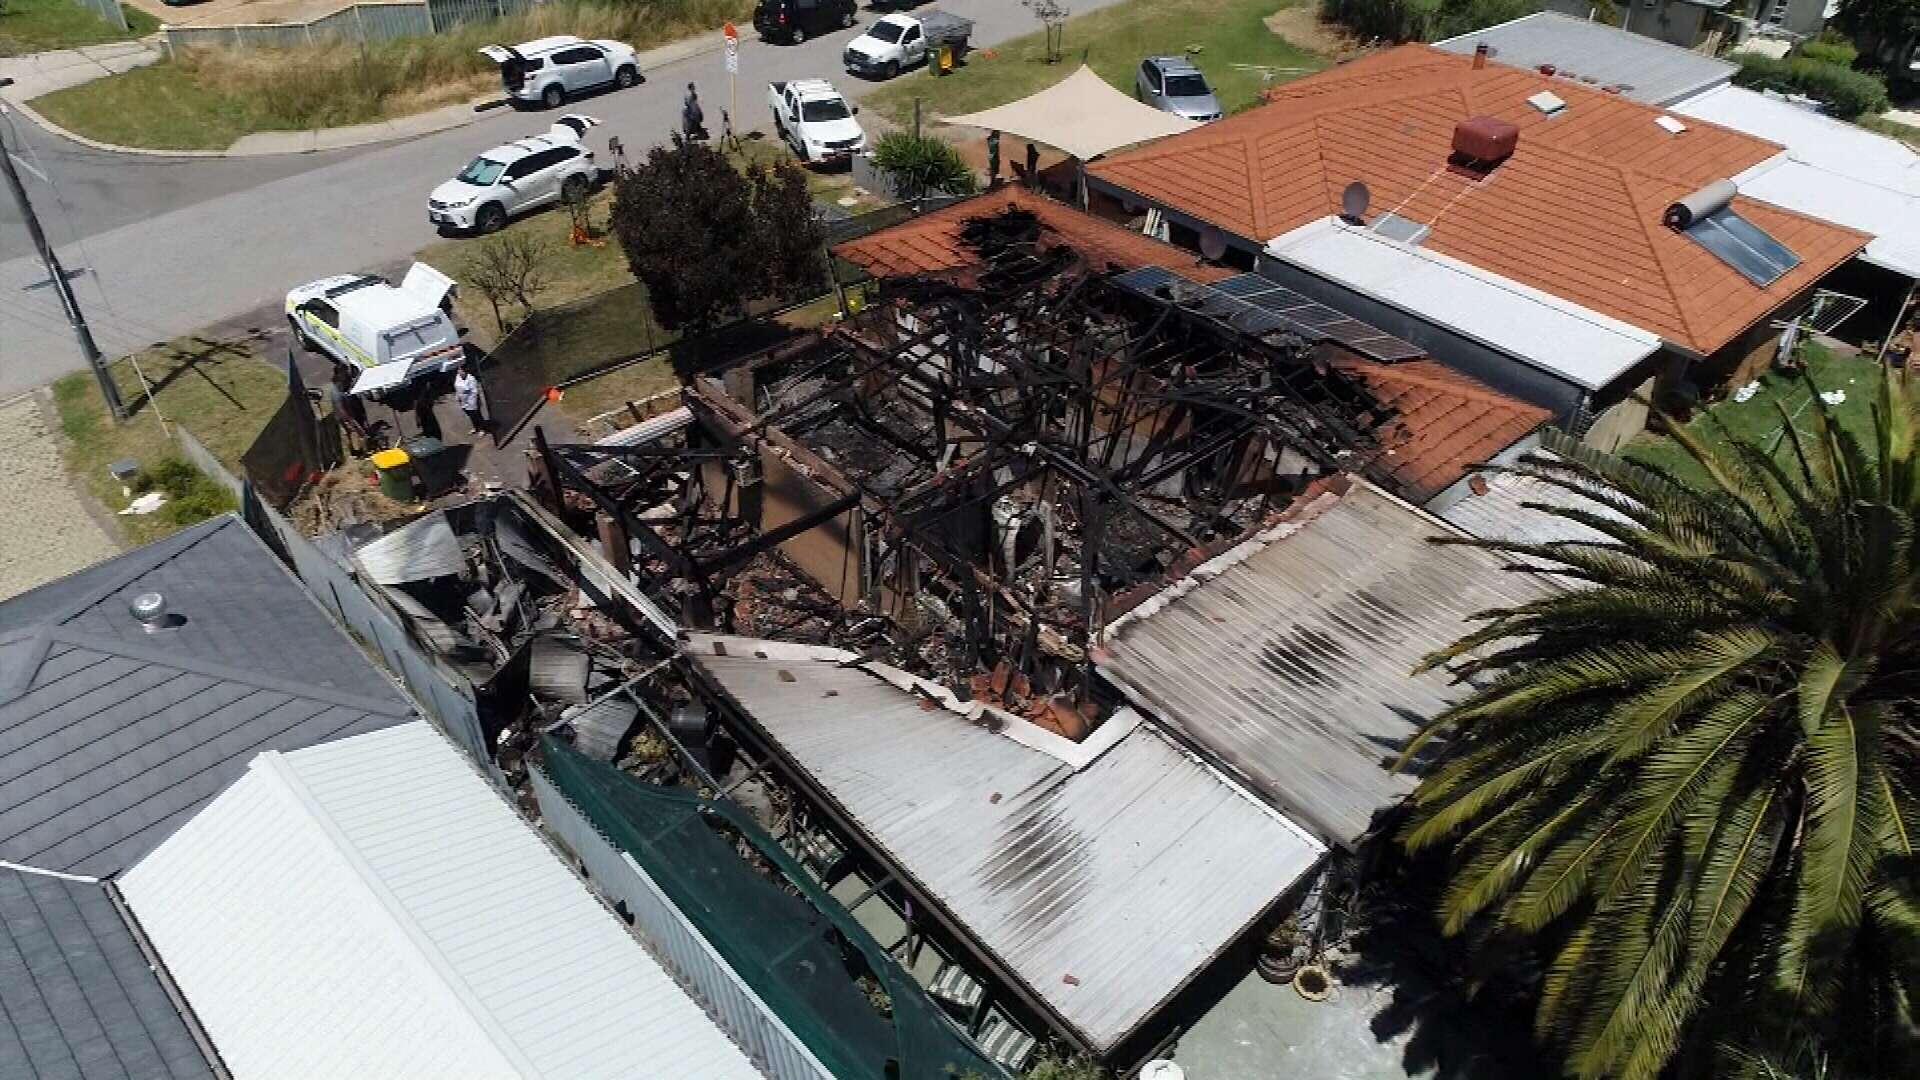 Police officers save Perth grandmother from burning home